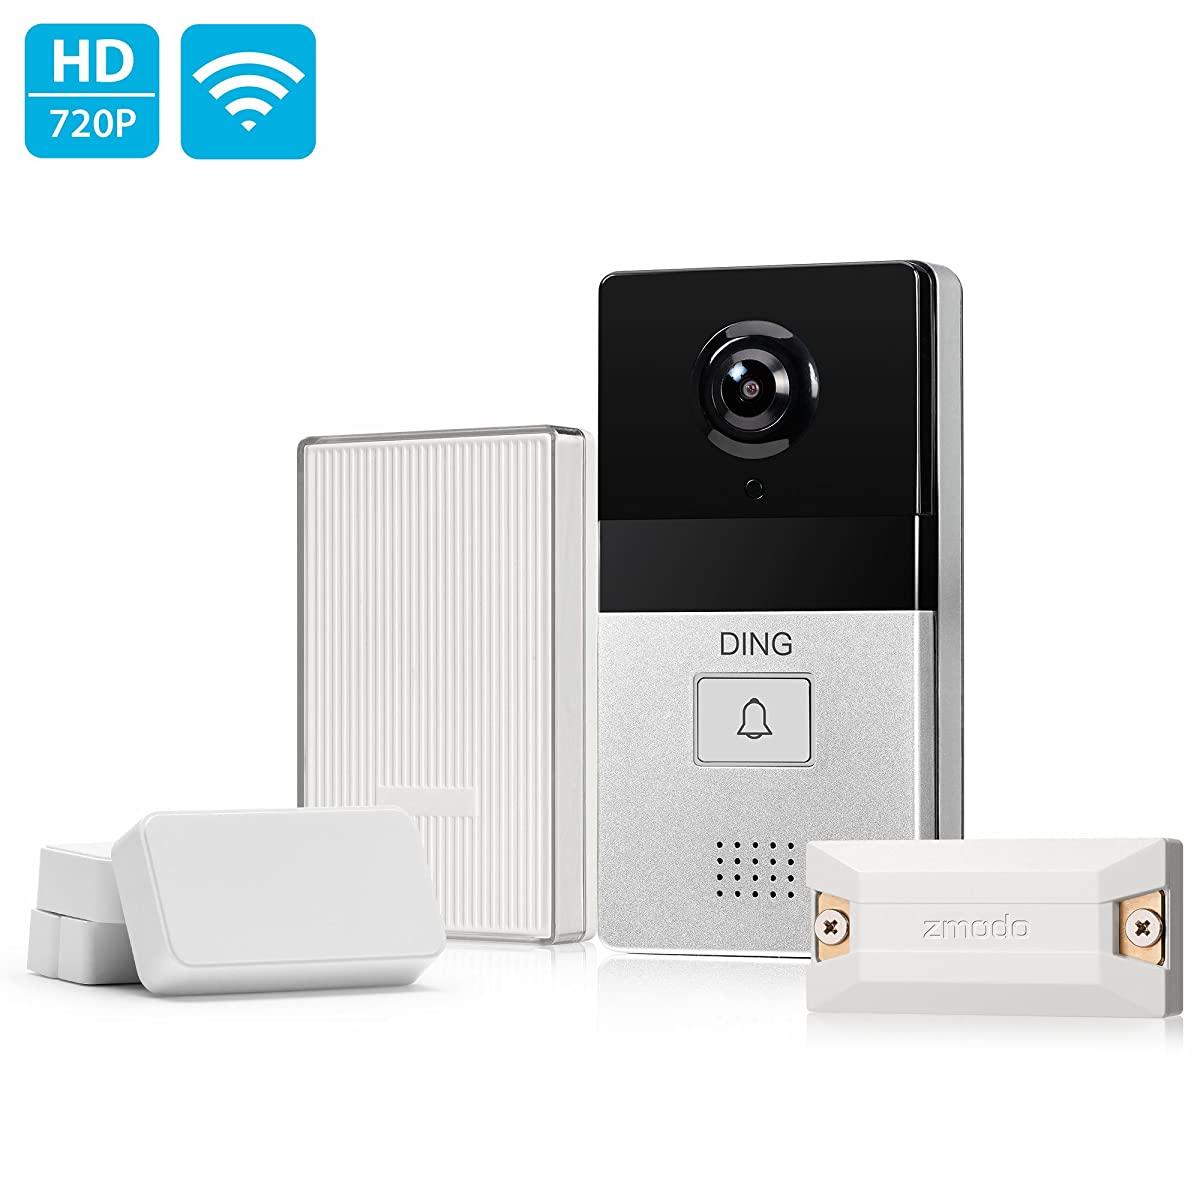 DING WiFi Enabled Video Doorbell Package with Smart Home Hub and WiFi Extender, 2 Pack Door/Window Sensors - Cloud Service Available